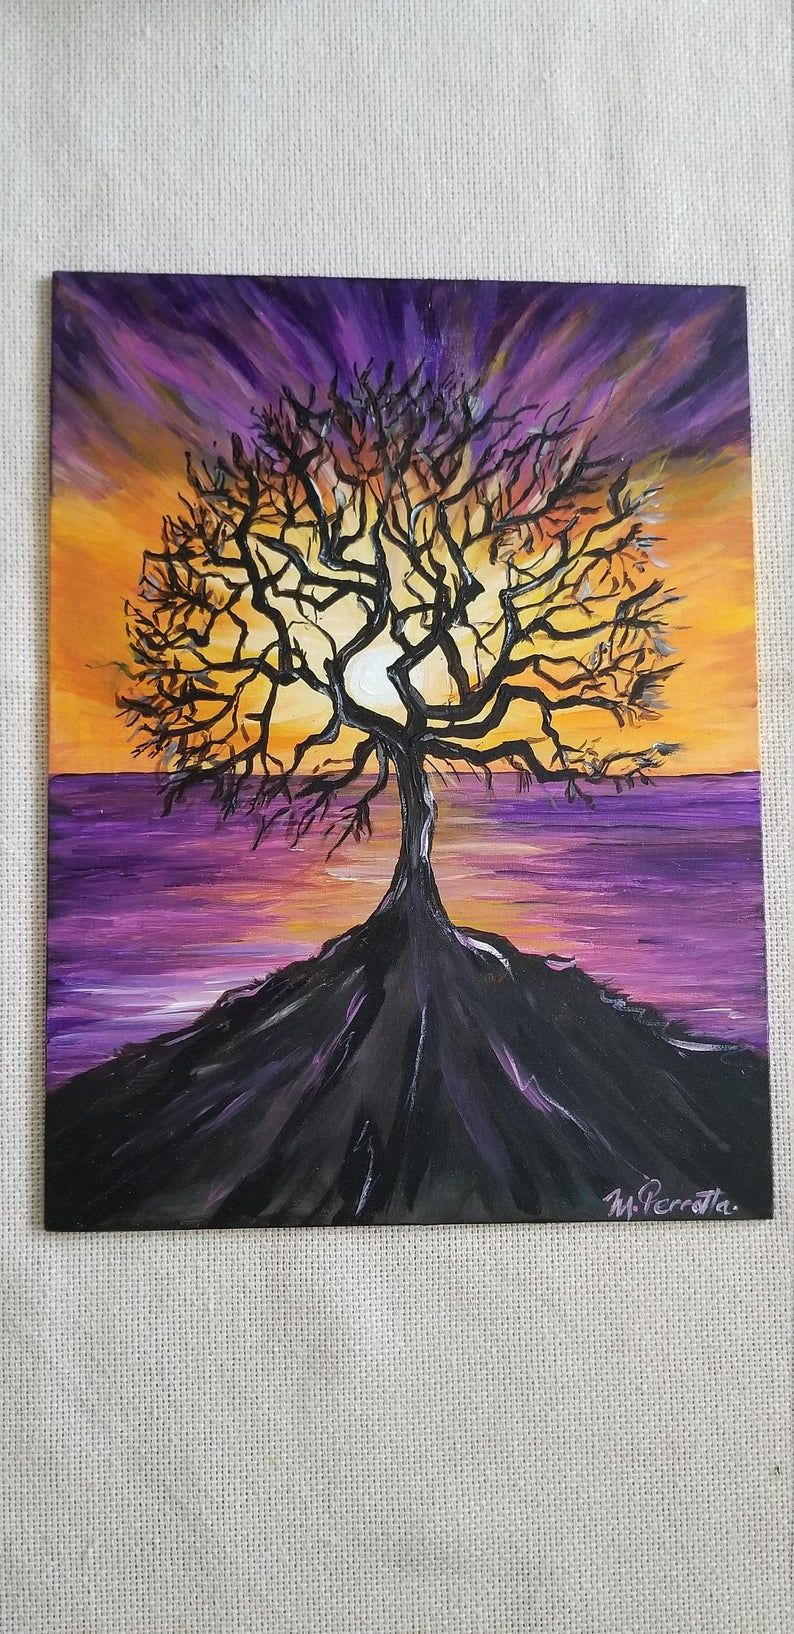 Tree silhouette and sunset painting, Purple and yellow sunset painting,Black  tree acrylic painting,Meditation painting